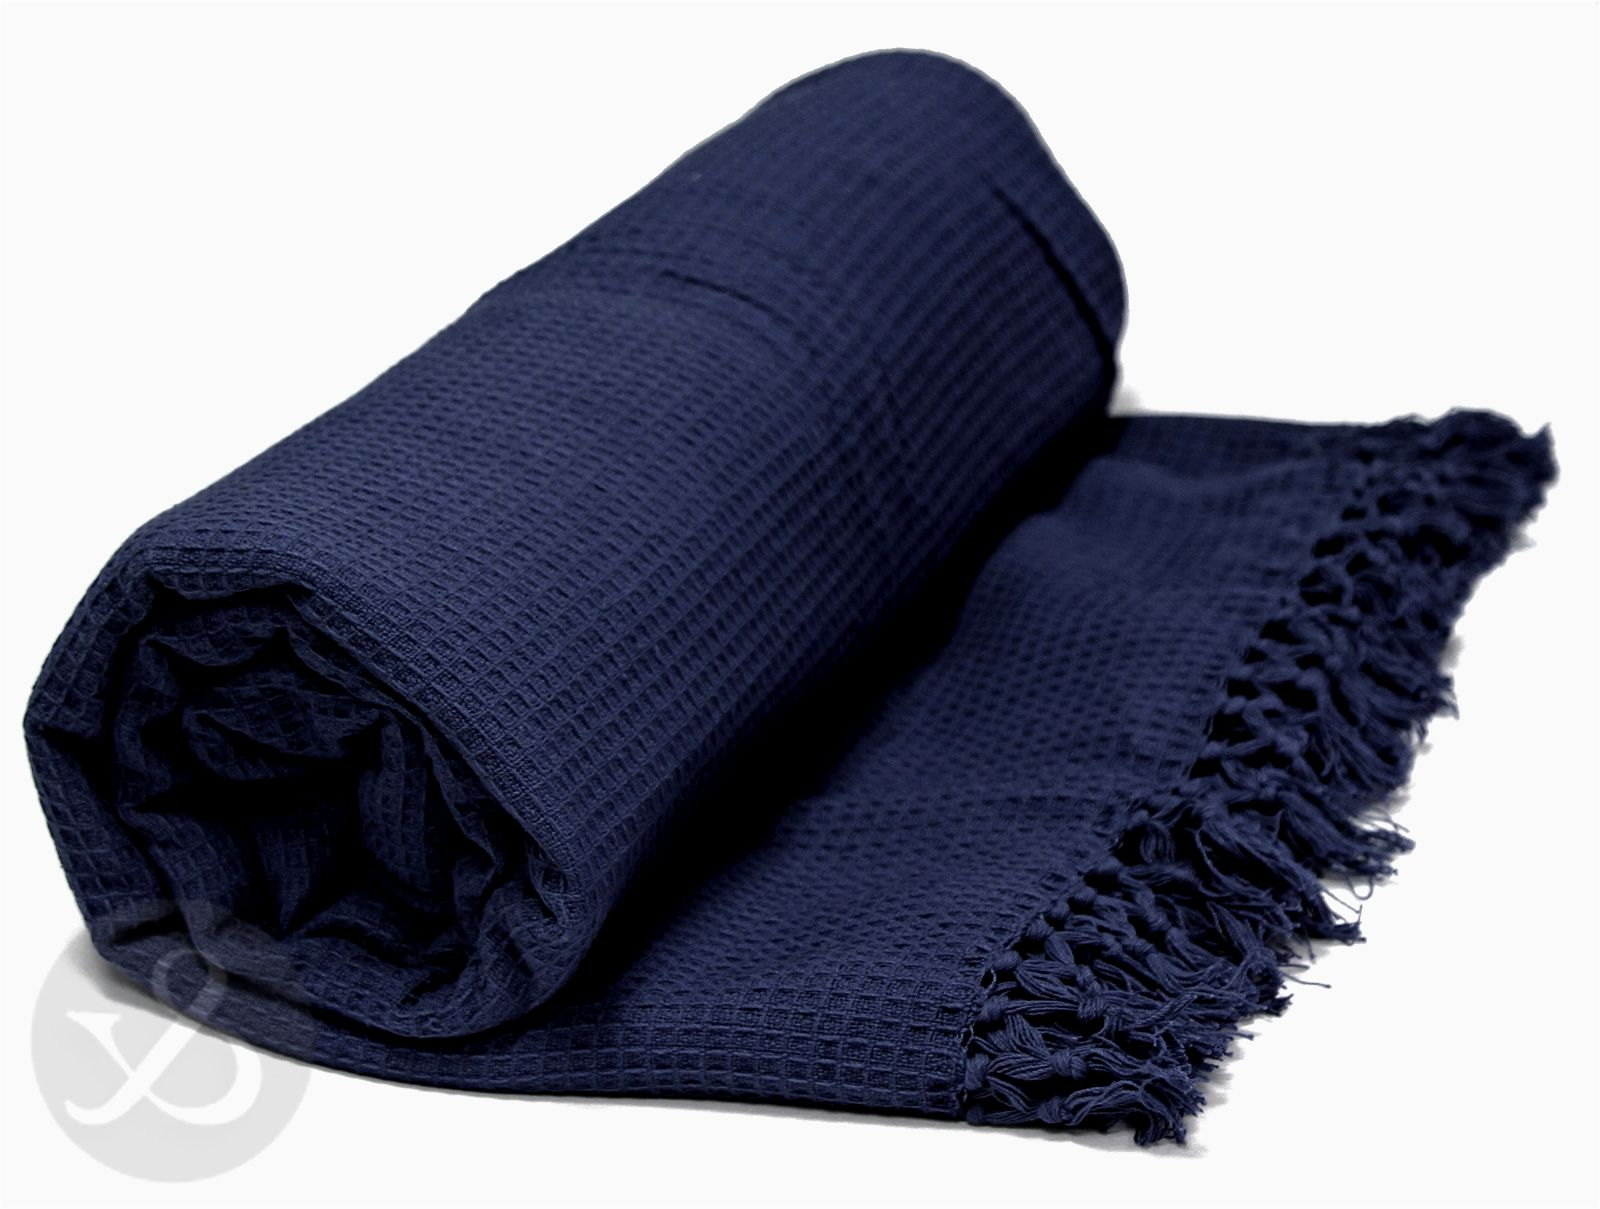 superb sofa throw covers concept-Lovely sofa Throw Covers Online